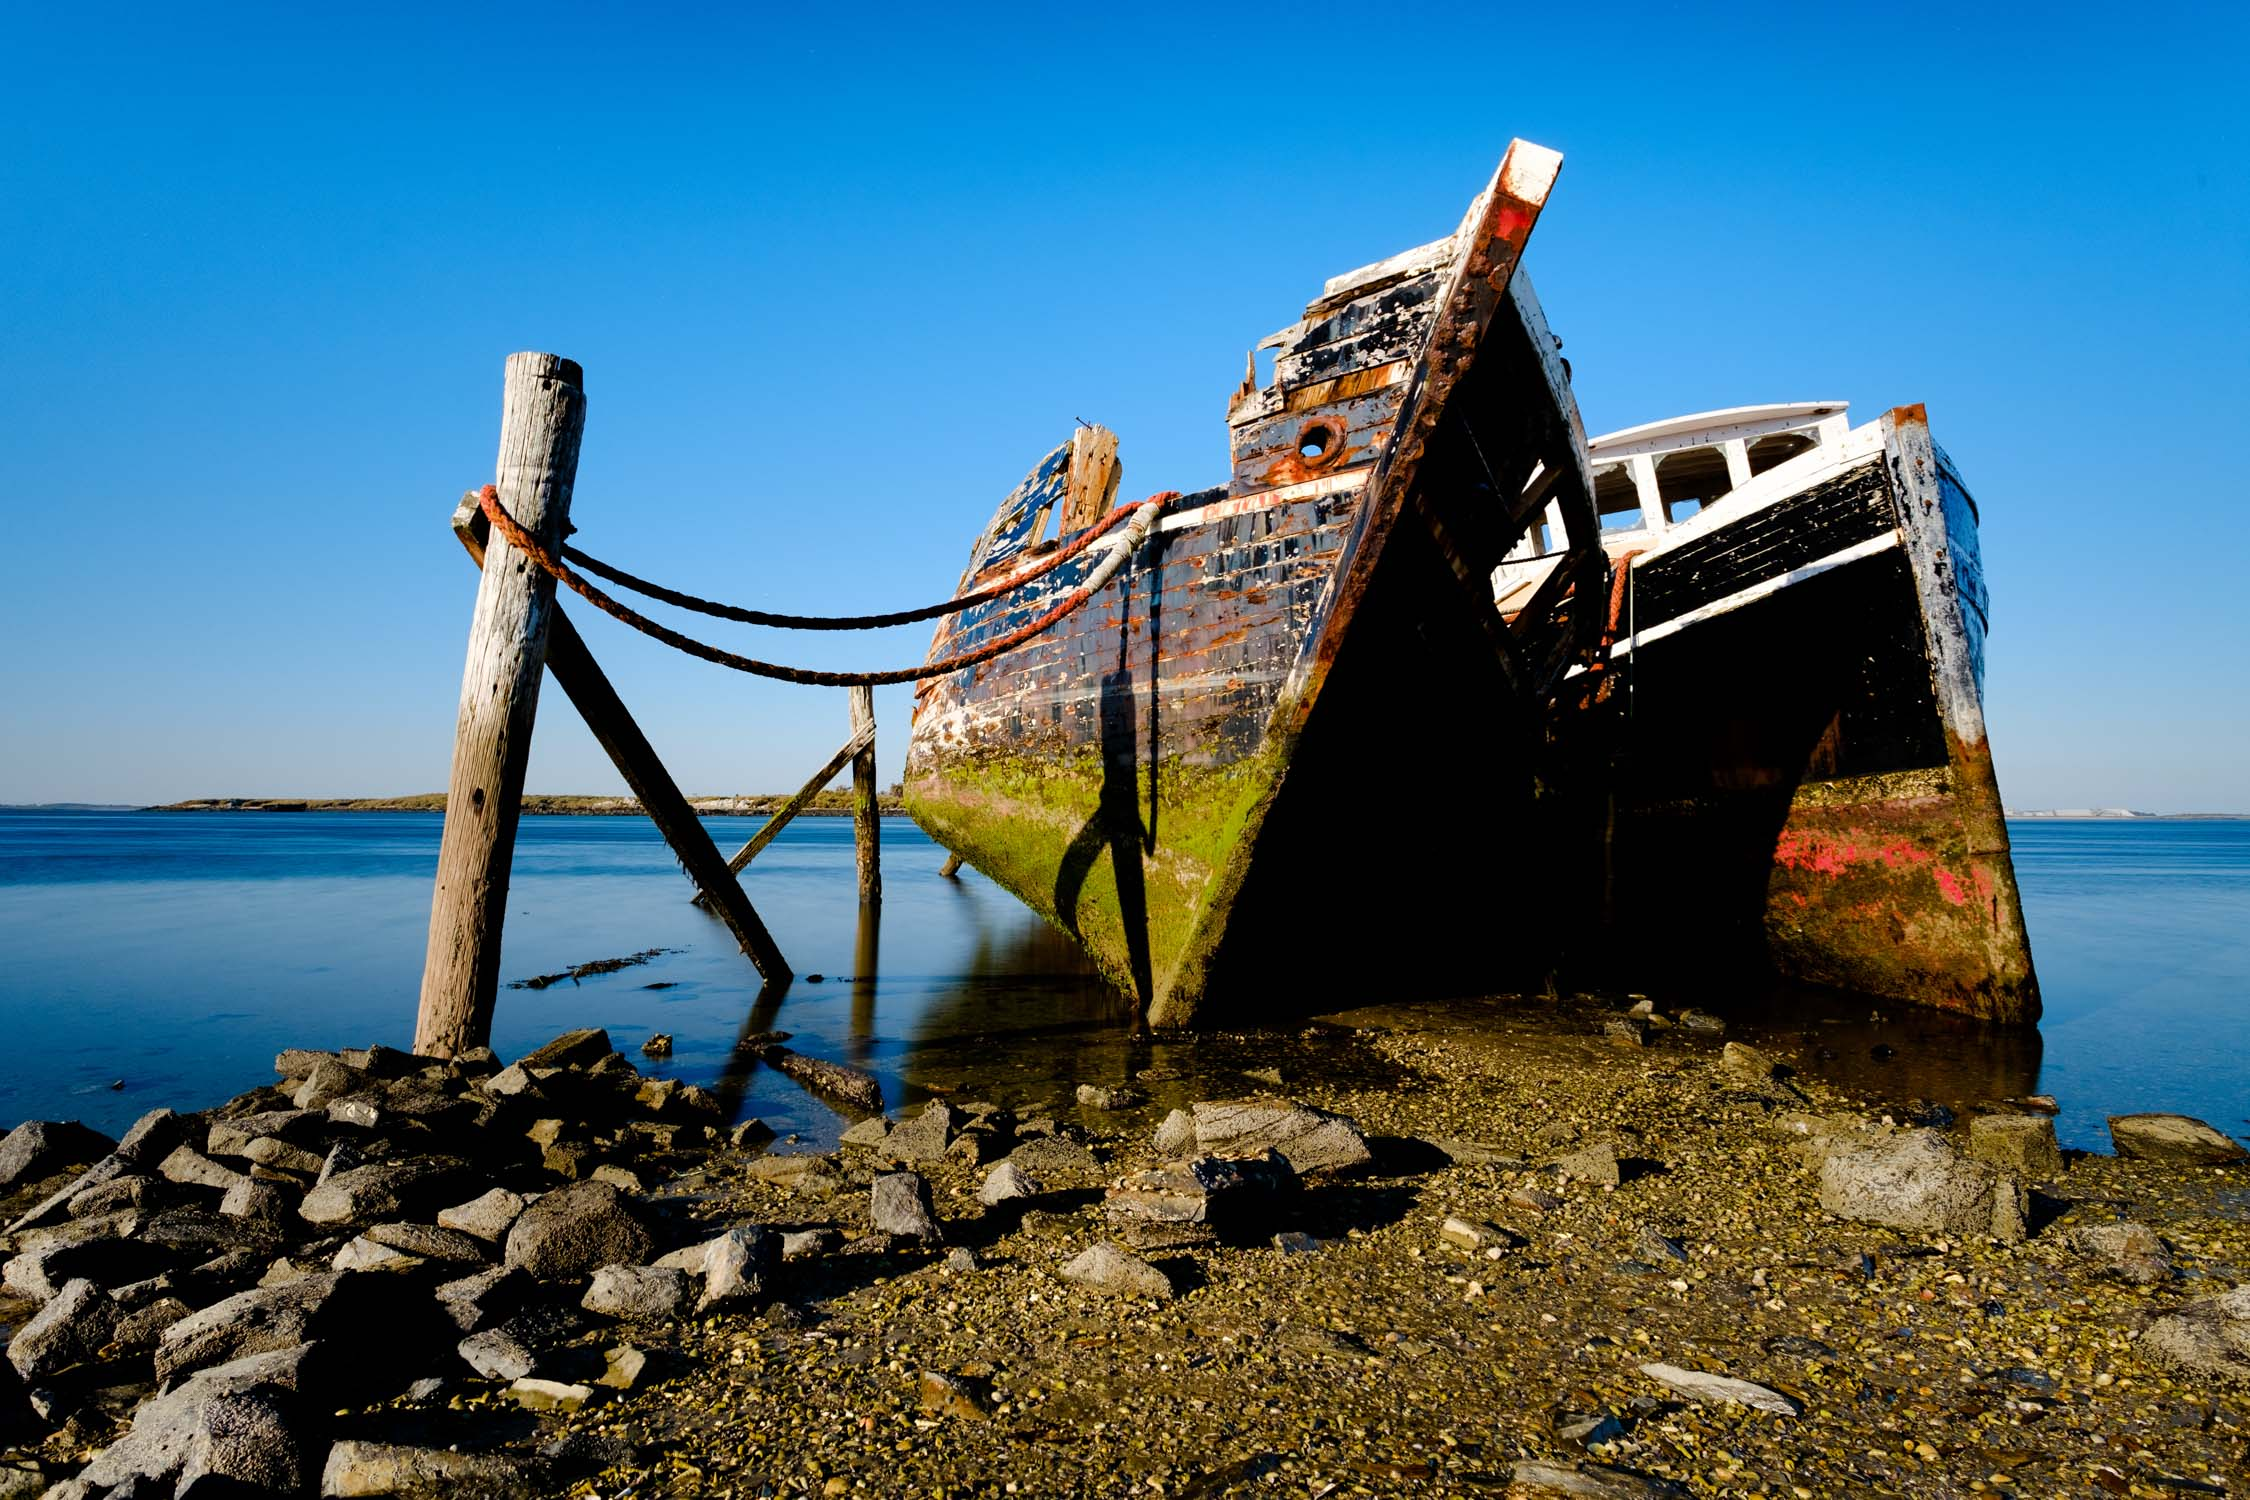 These two ships moored together formed the basis of my subject matter for the location. There are older more skeletal shipwrecks,but I found the size of these 2 really appealing.